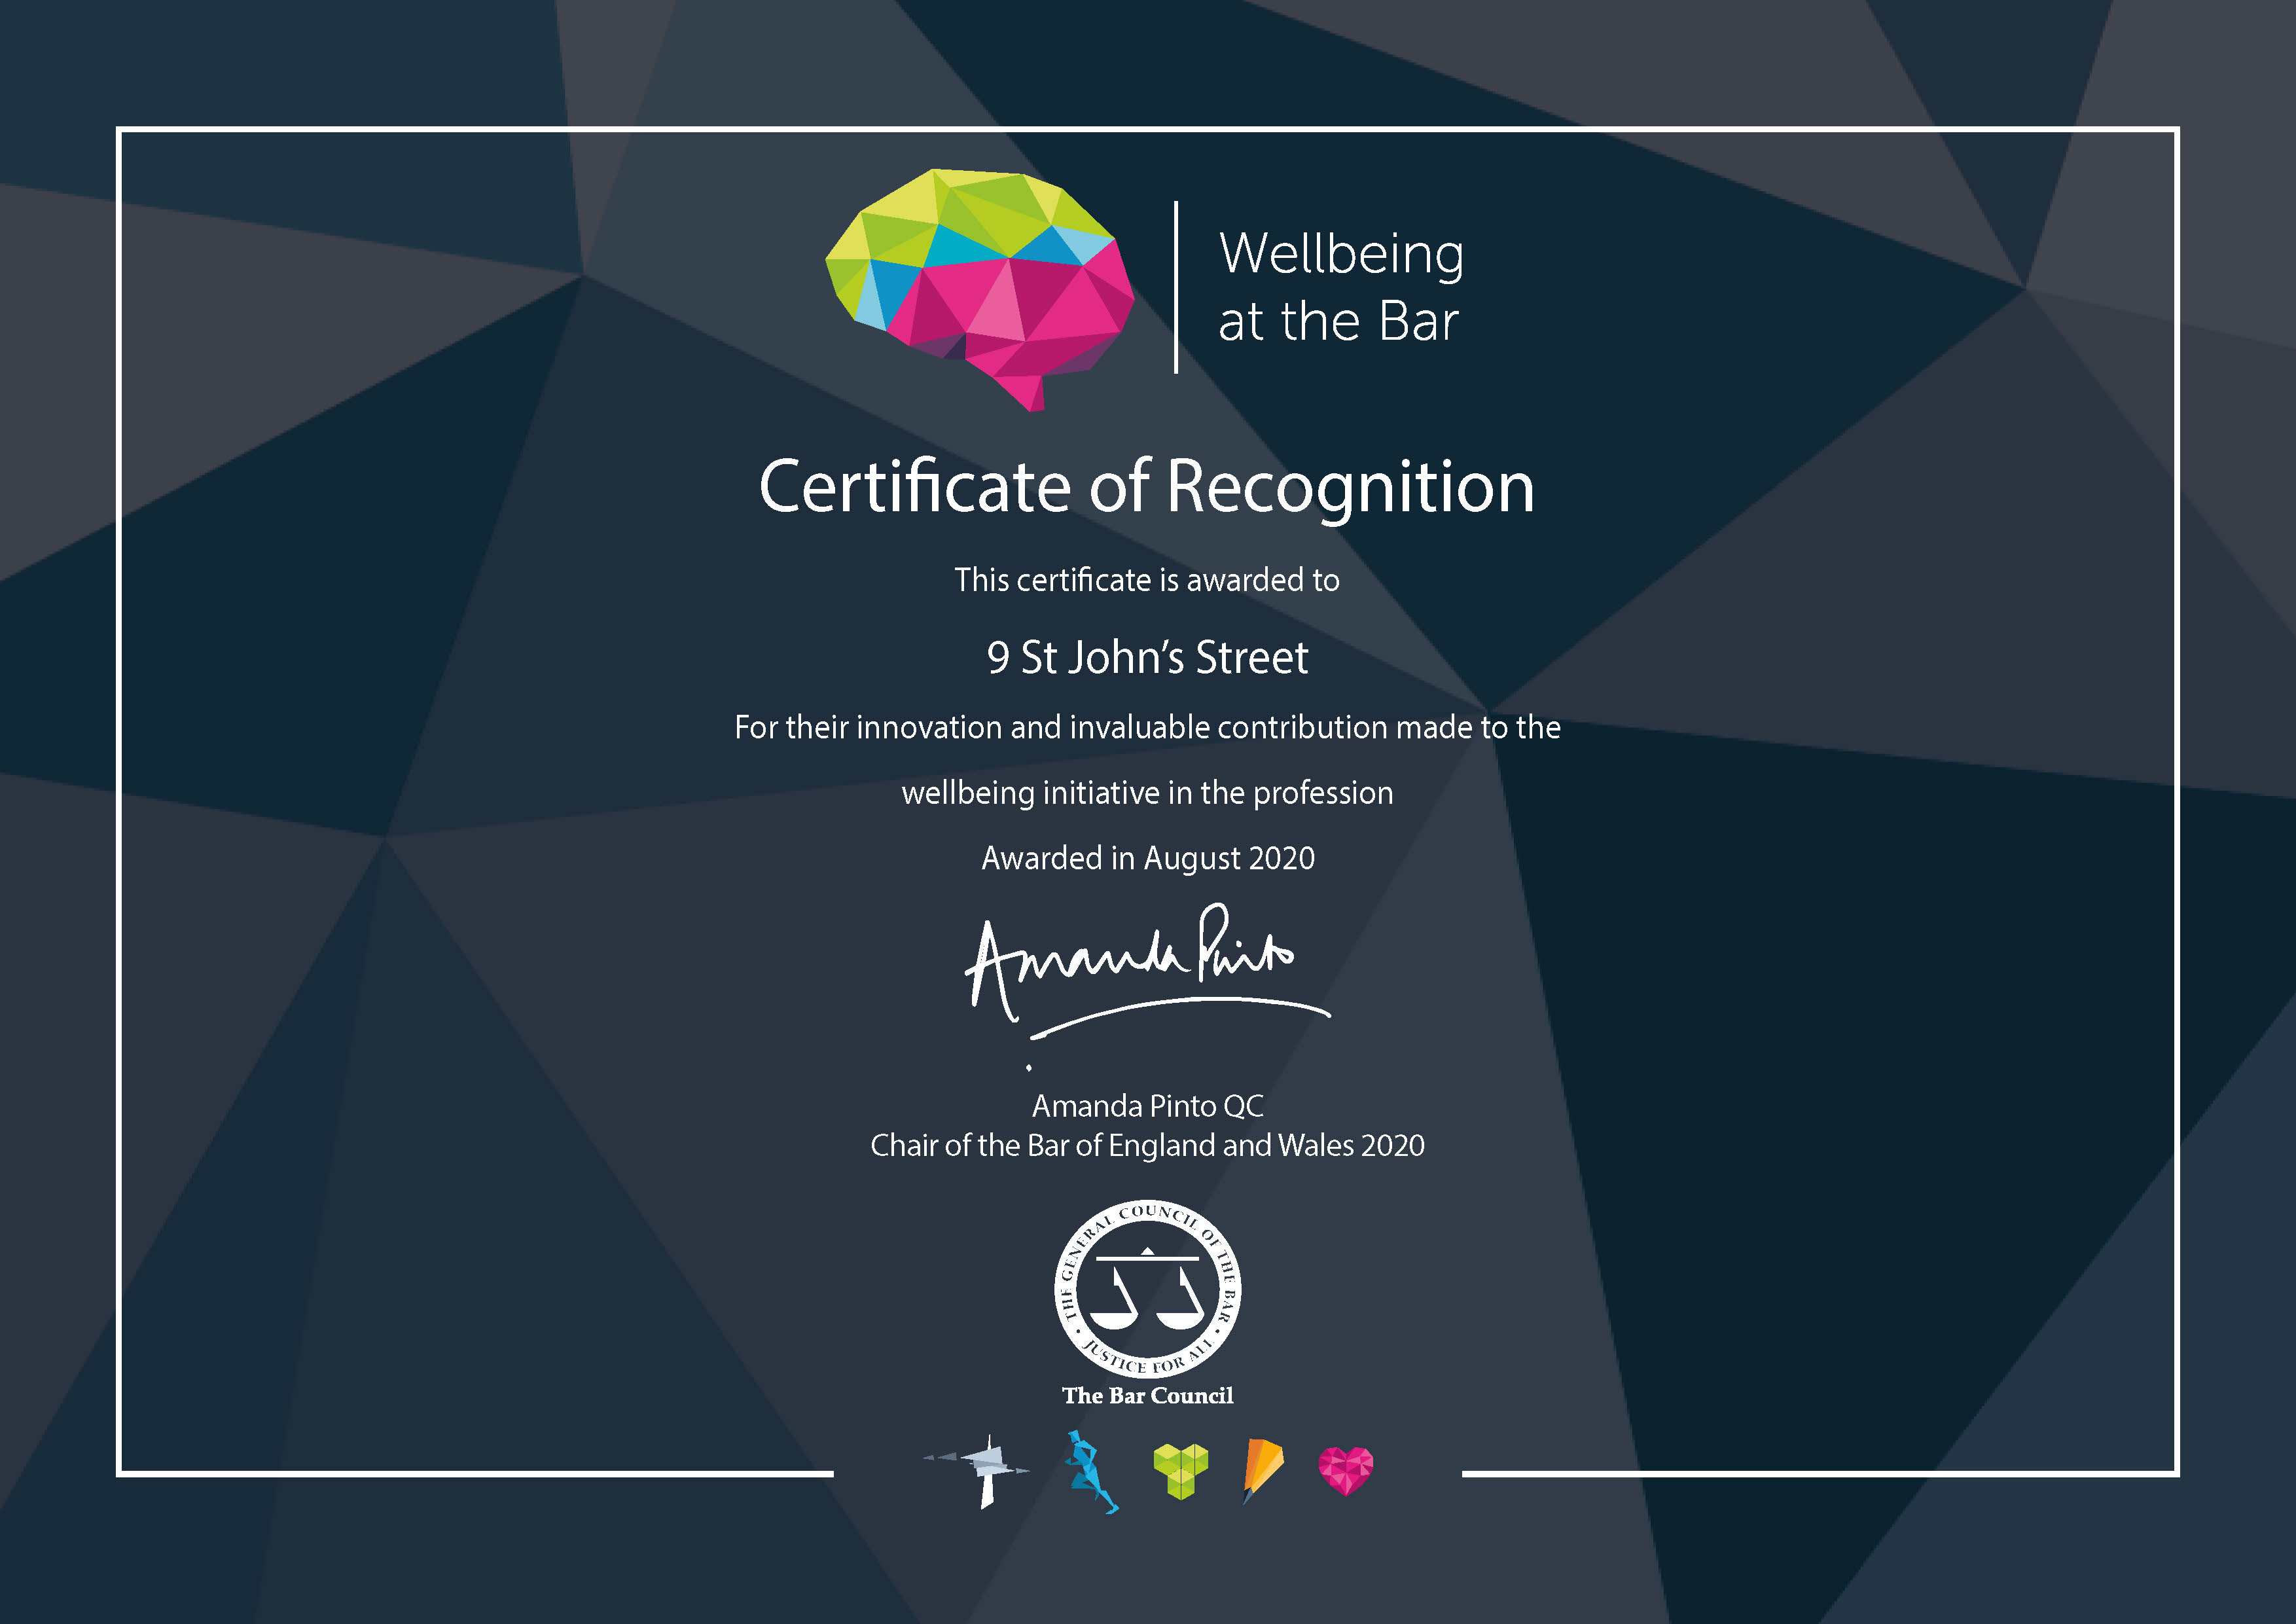 9 St John Street awarded a Well Being Certificate of Recognition